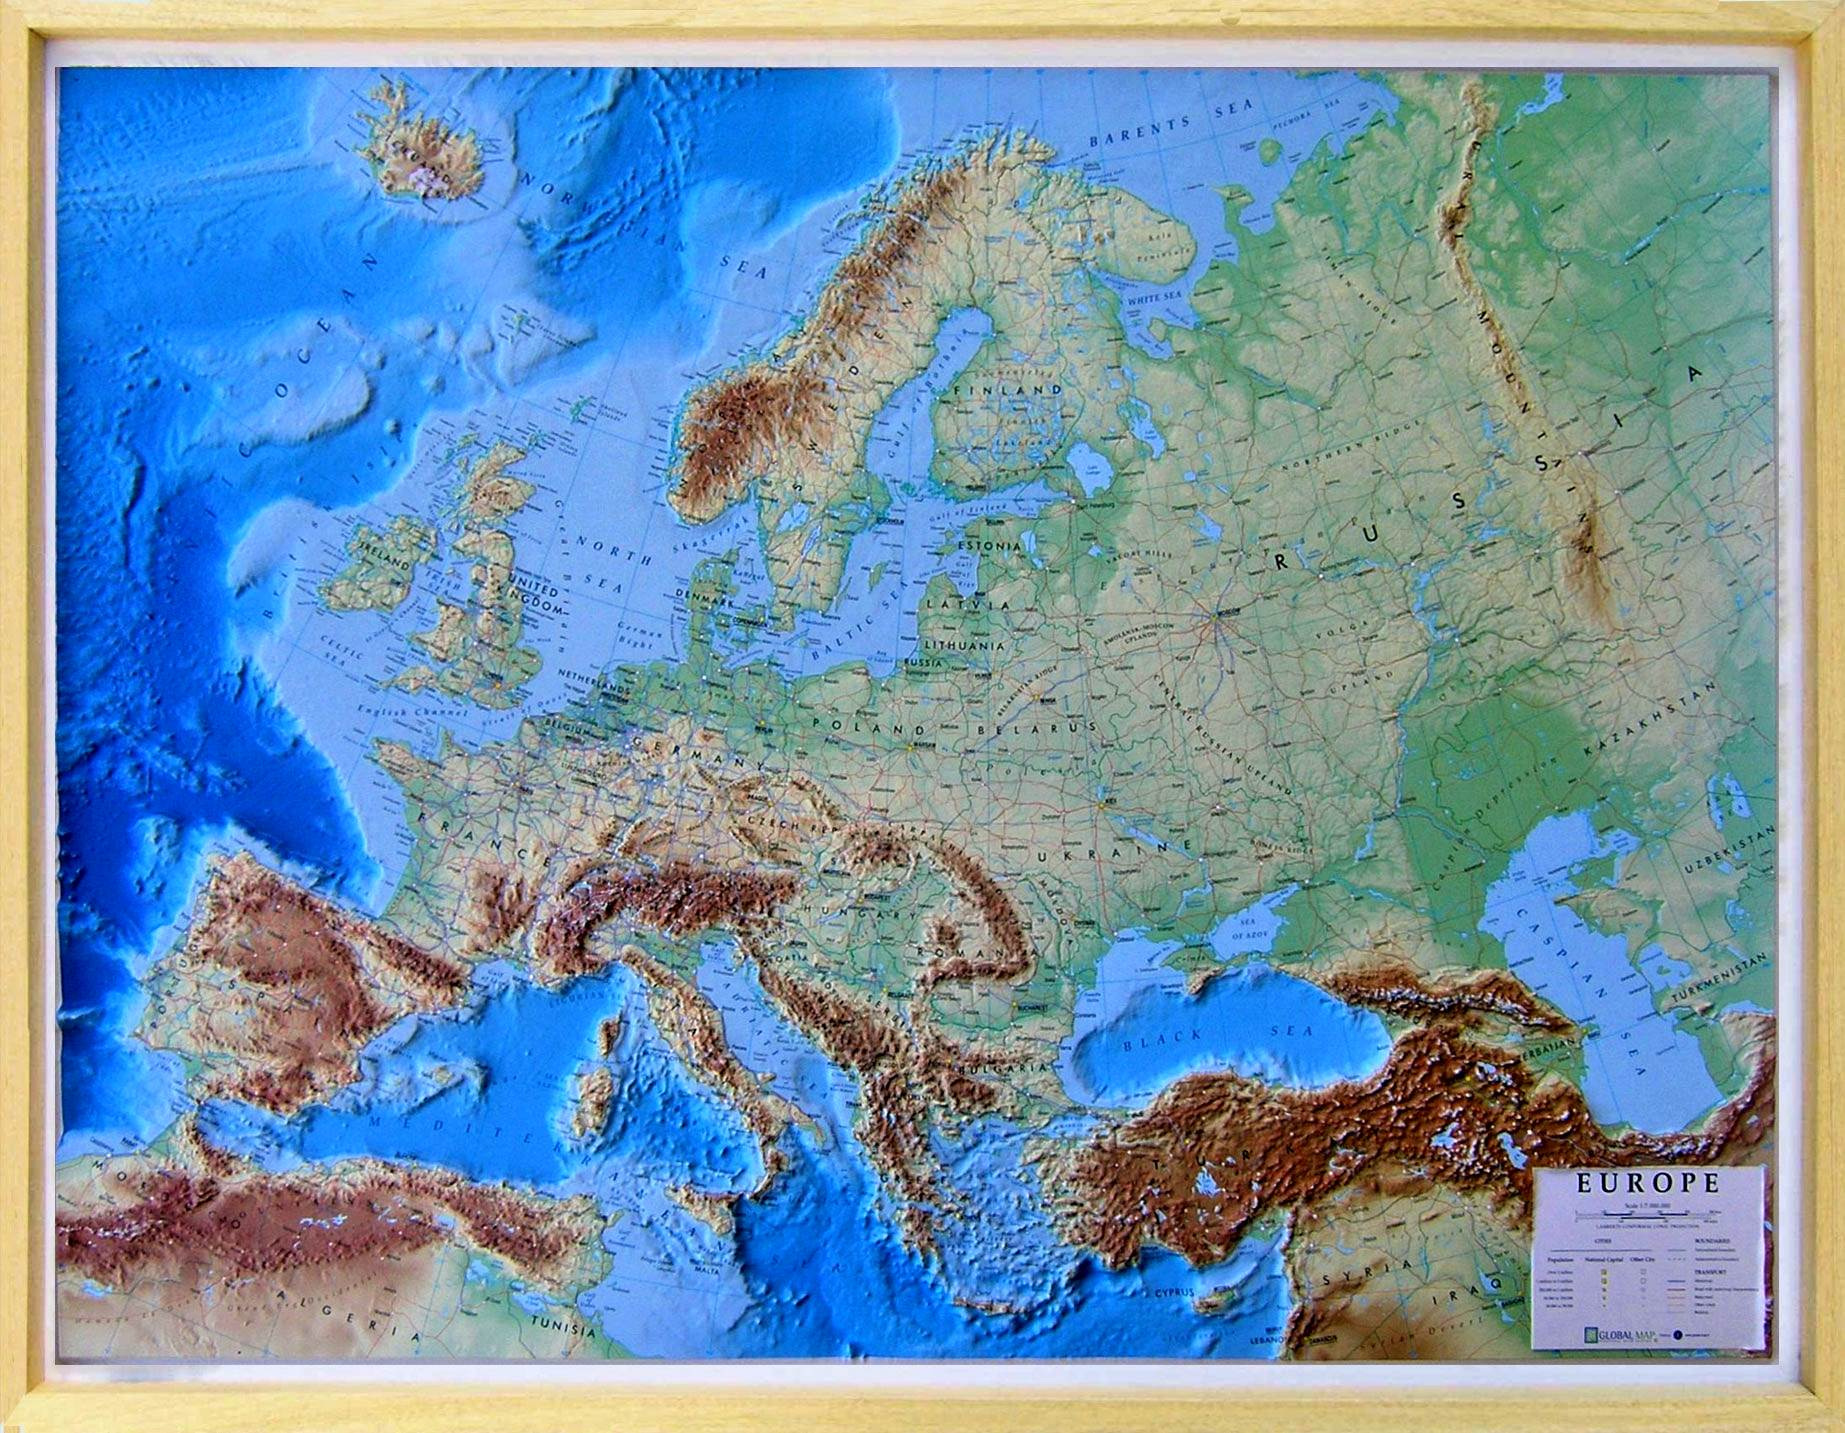 Relief Map Of The World.Raised Relief Map Europe As 3d Map